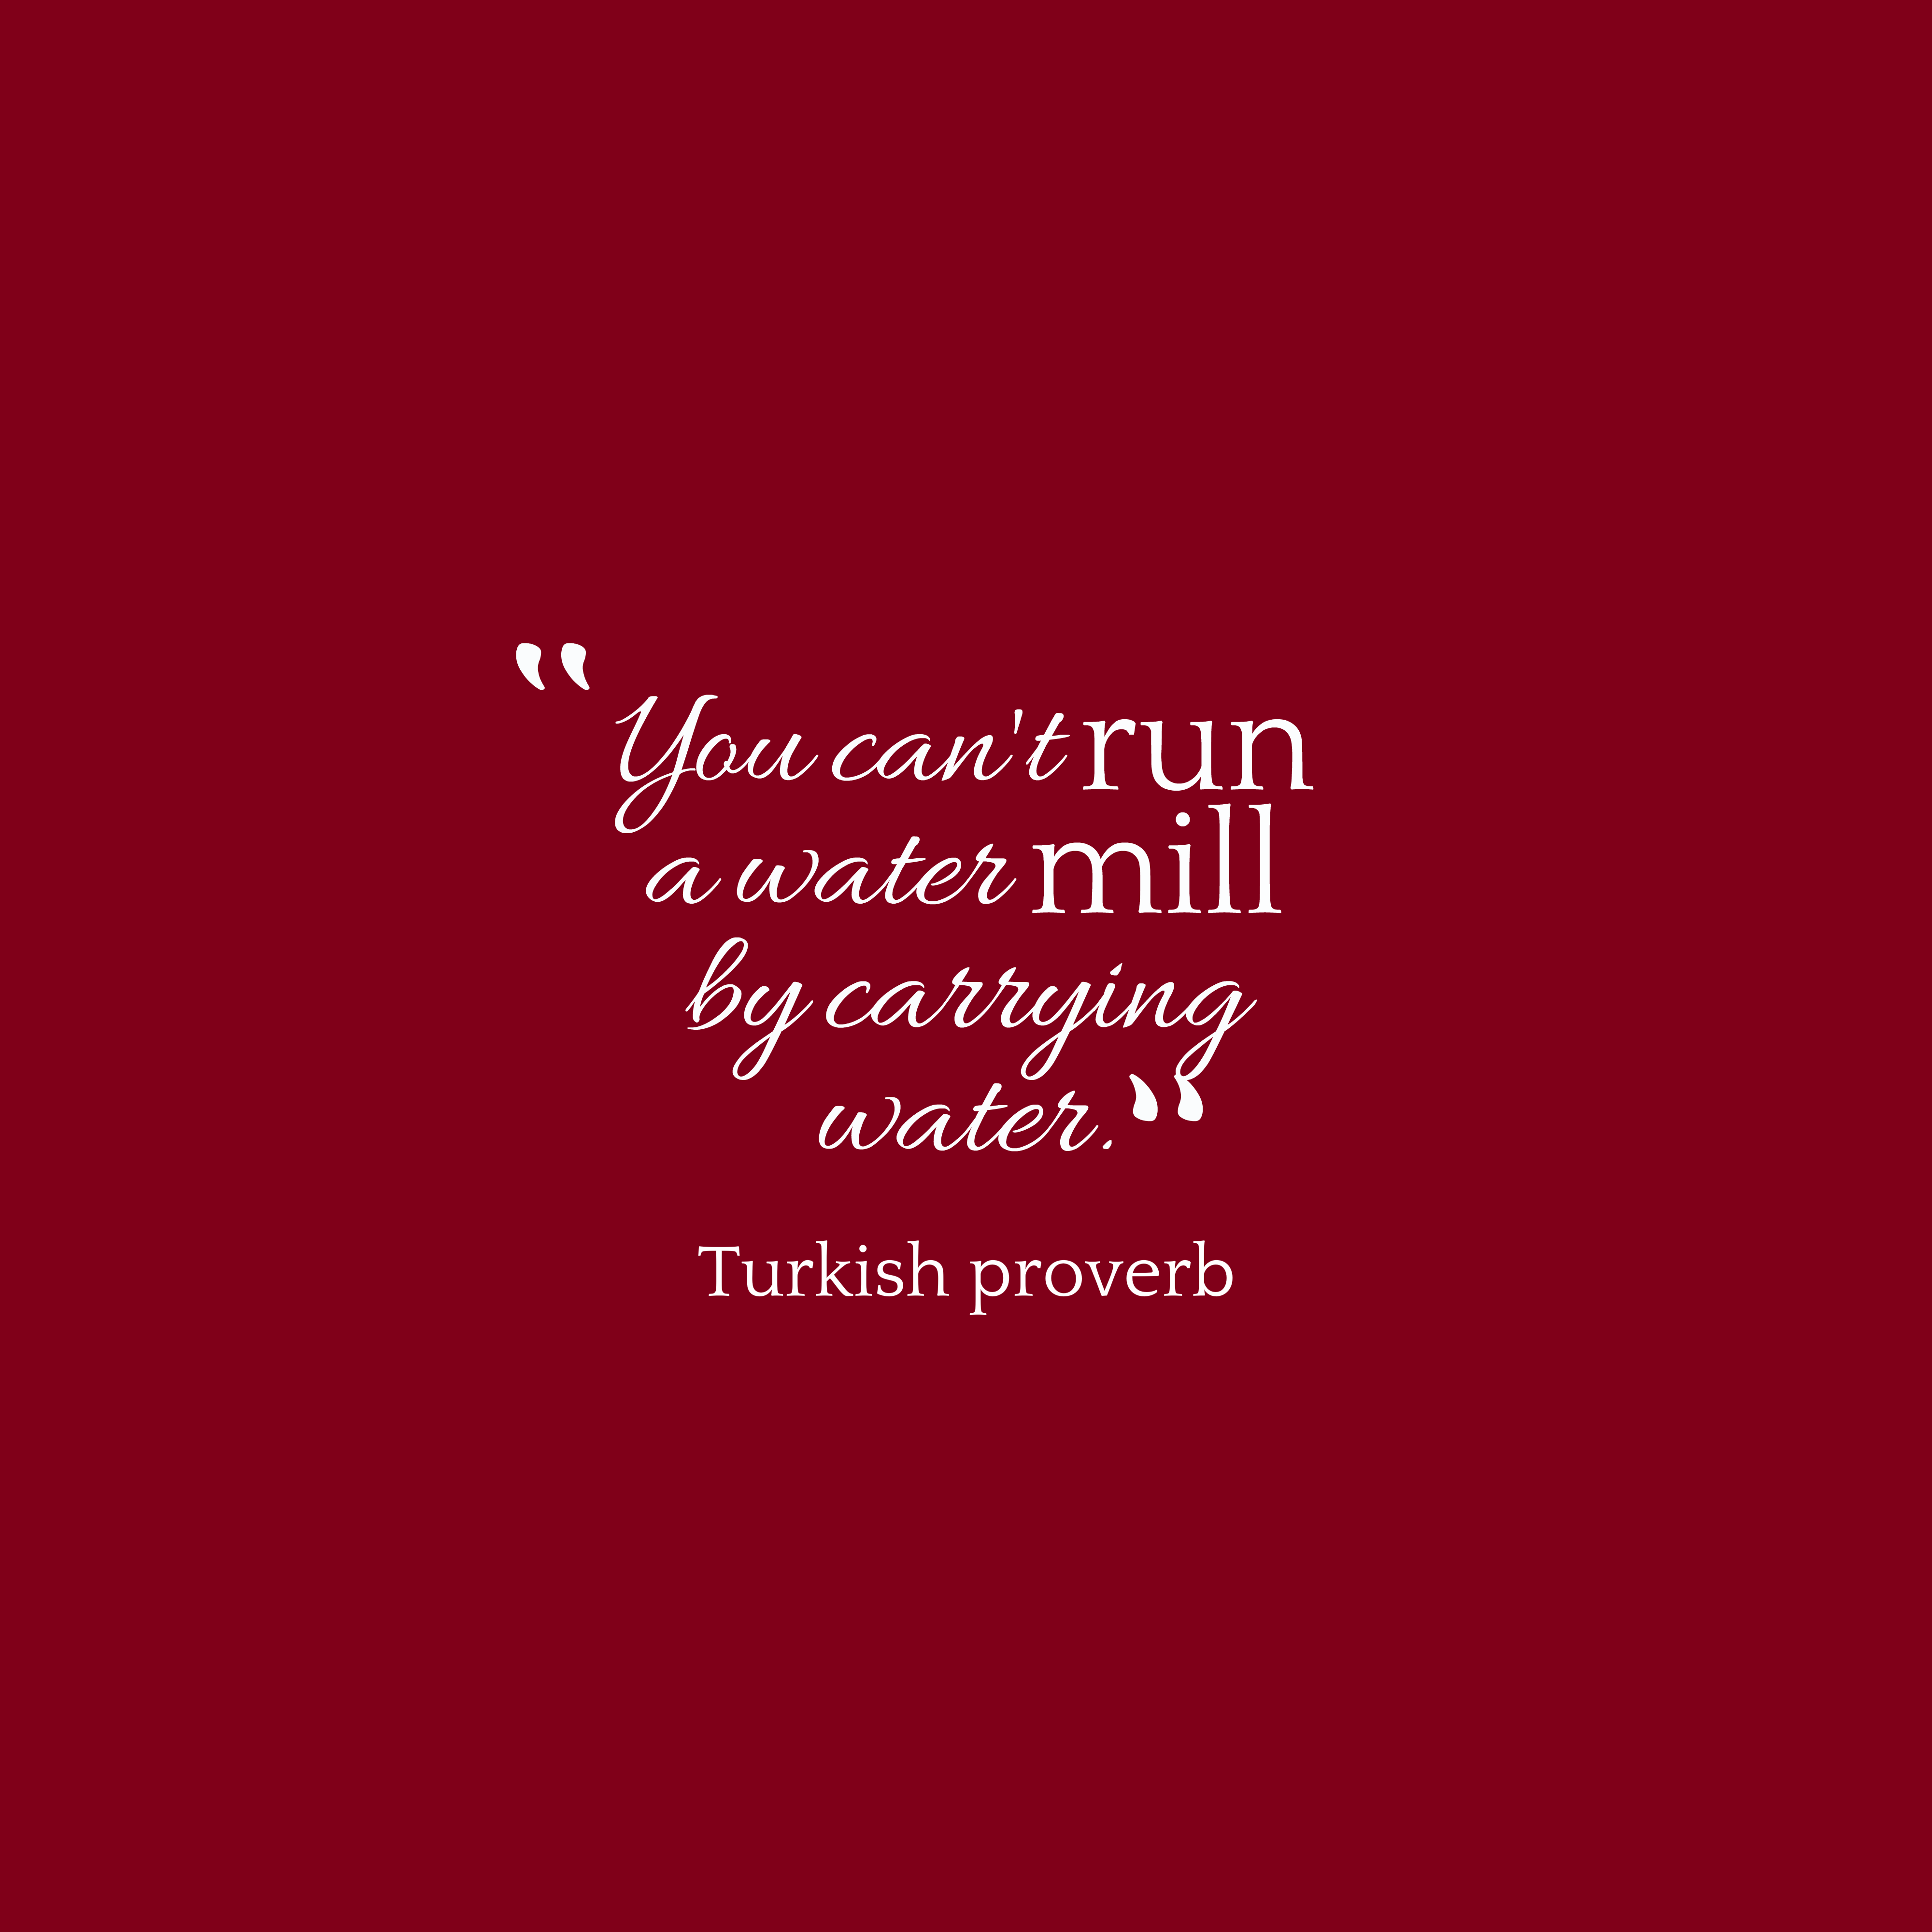 Quotes image of You can't run a water mill by carrying water.